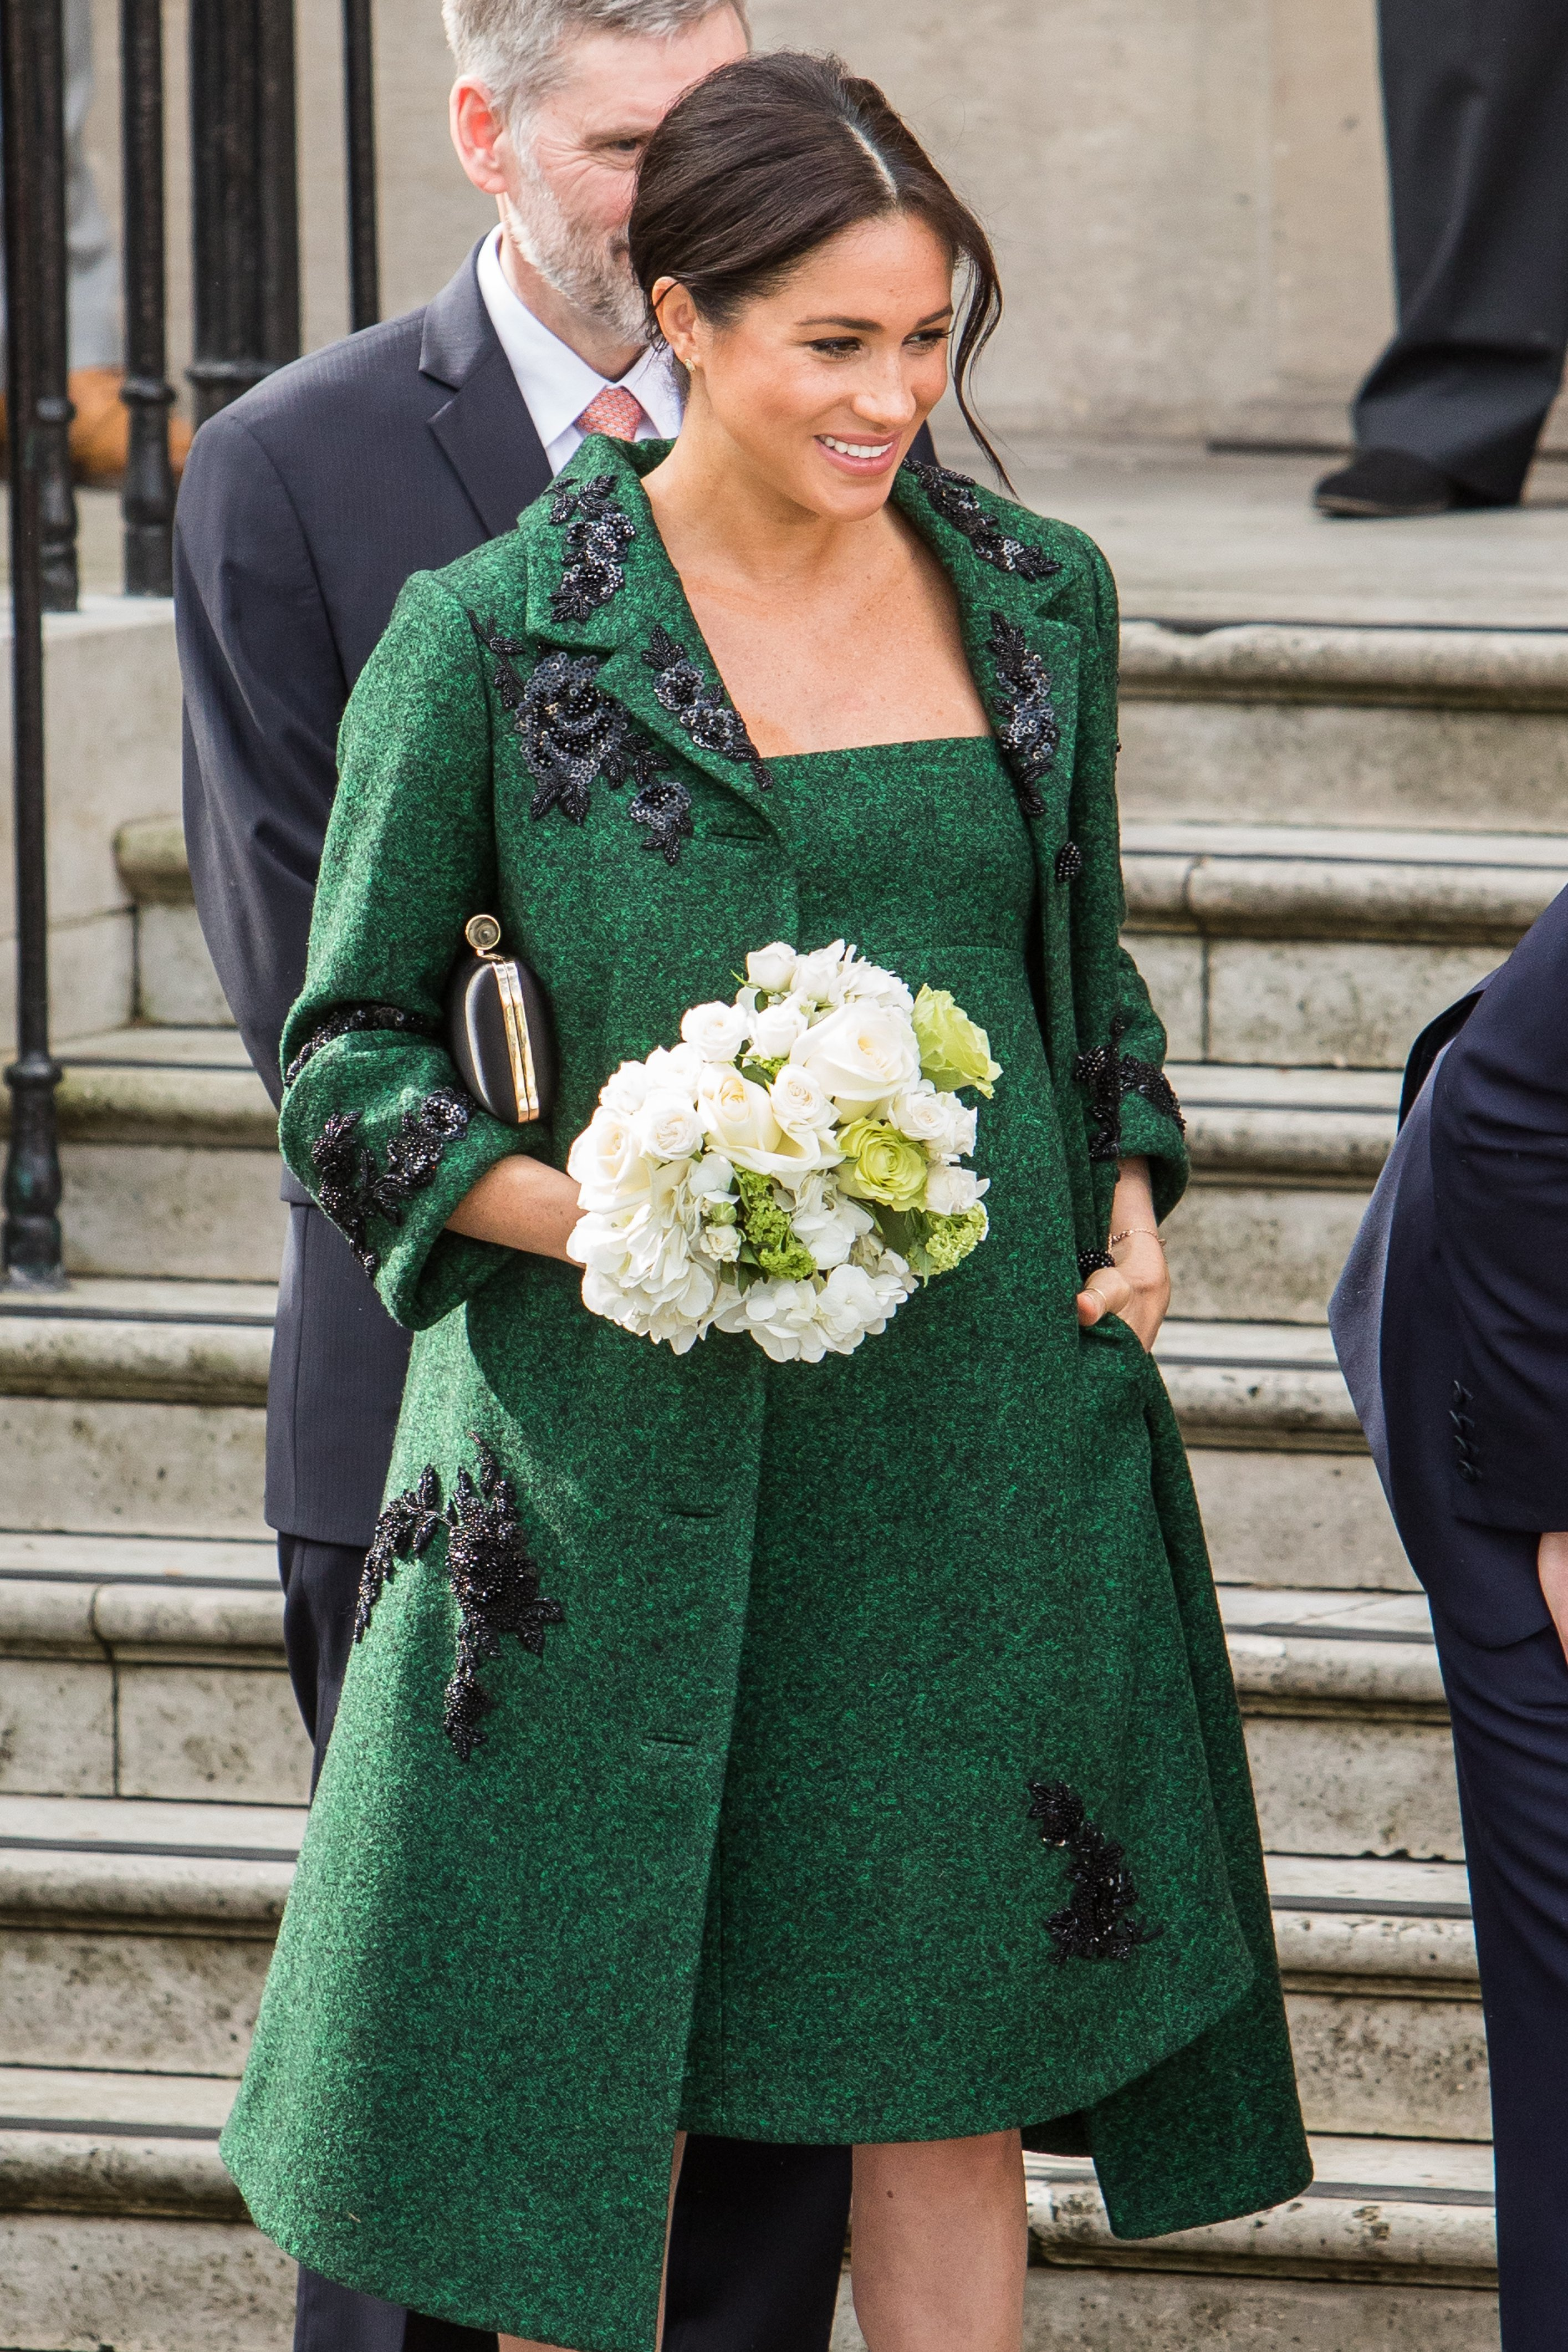 Meghan Markle attends Commonwealth Day Youth Event | Photo: Shutterstock